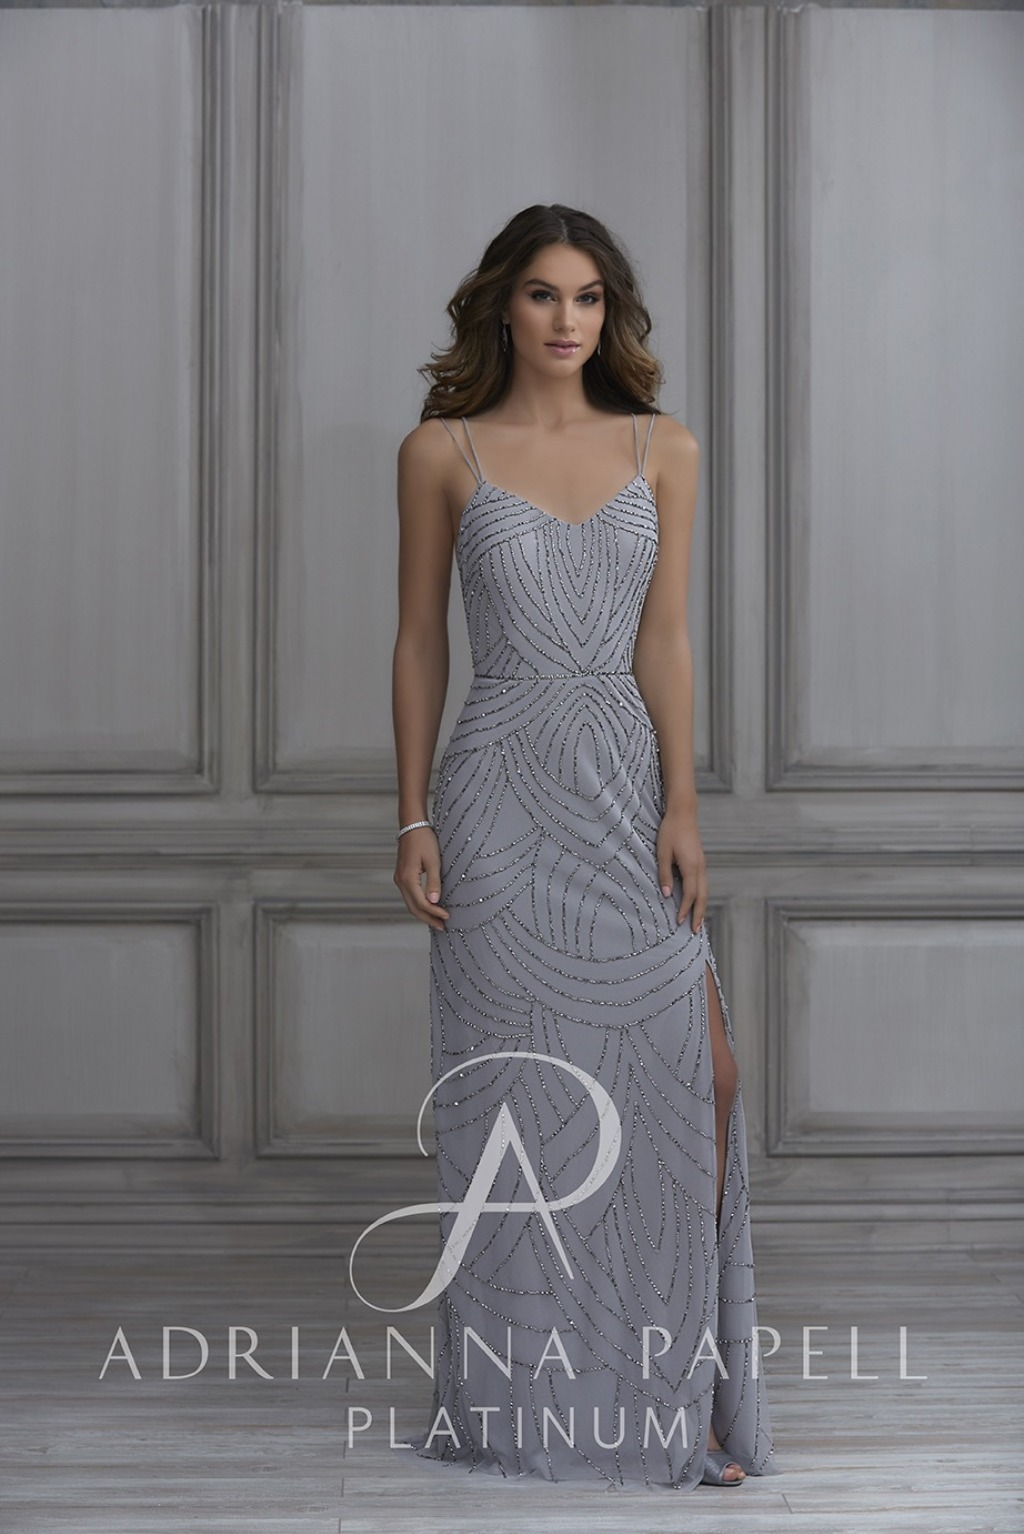 Highlighting Adriana Papell Bridesmaids